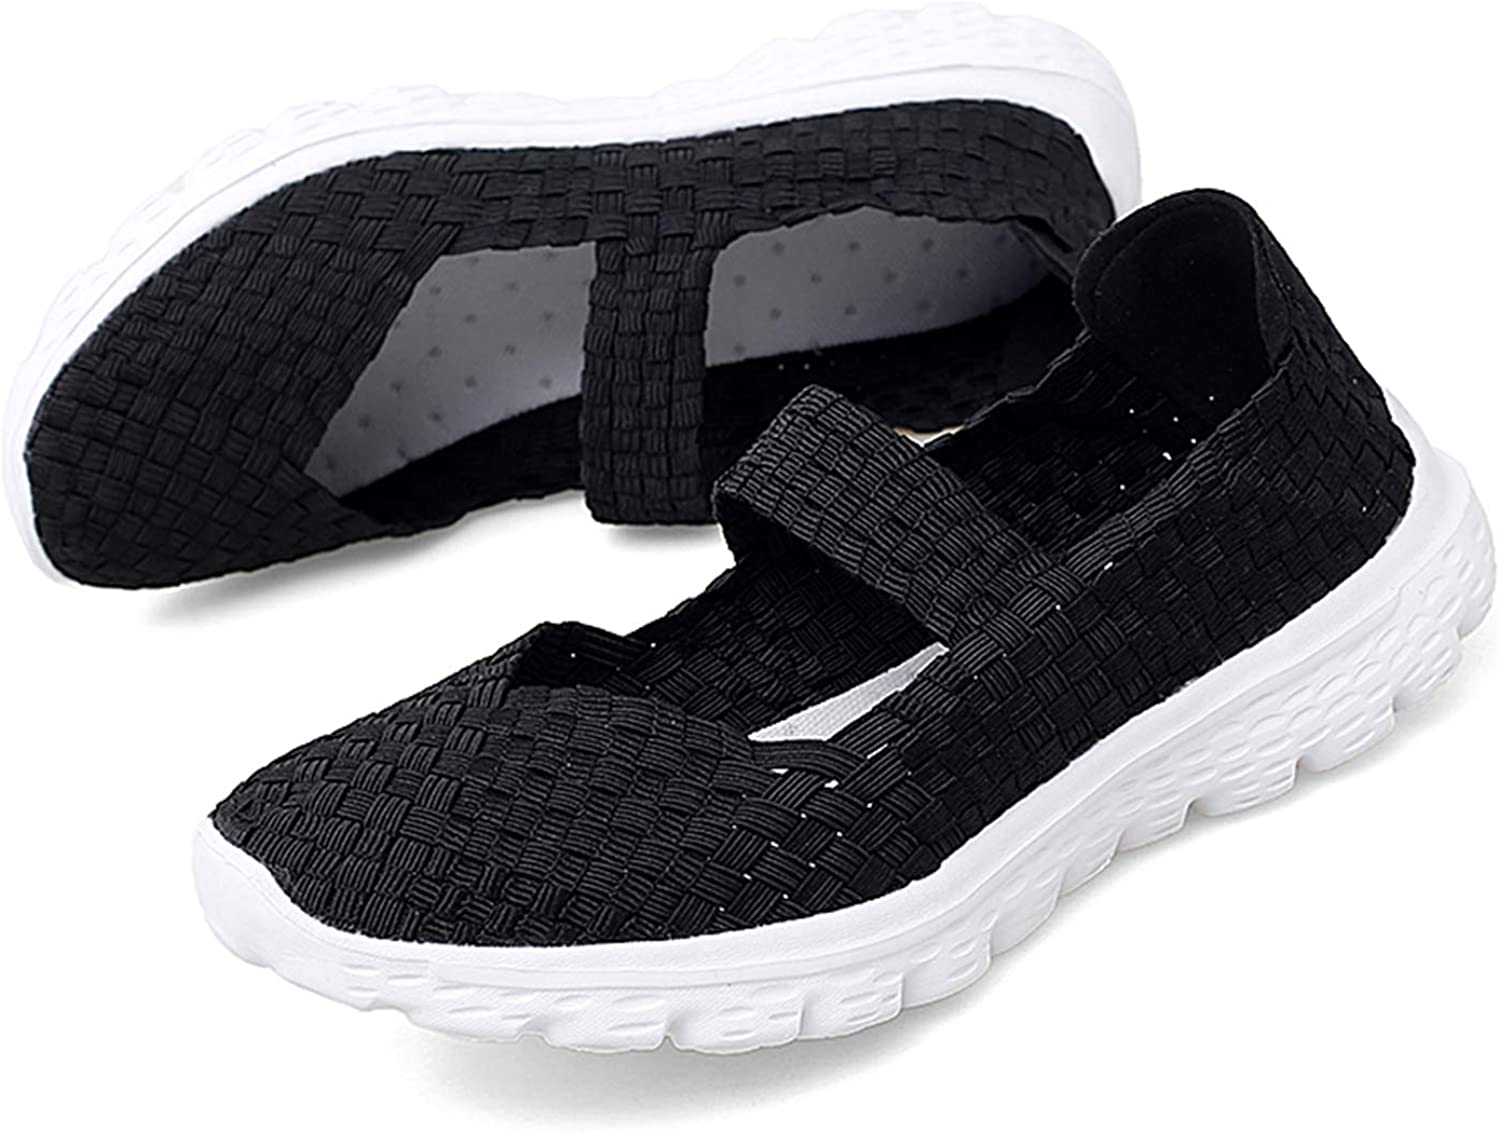 Women Woven Shoes Slip On Handmade Water Shoes Sneakers Comfort Lightweight Walking Elastic Flat Fashion Women's Stretch Loafers Mesh Breathable Black6